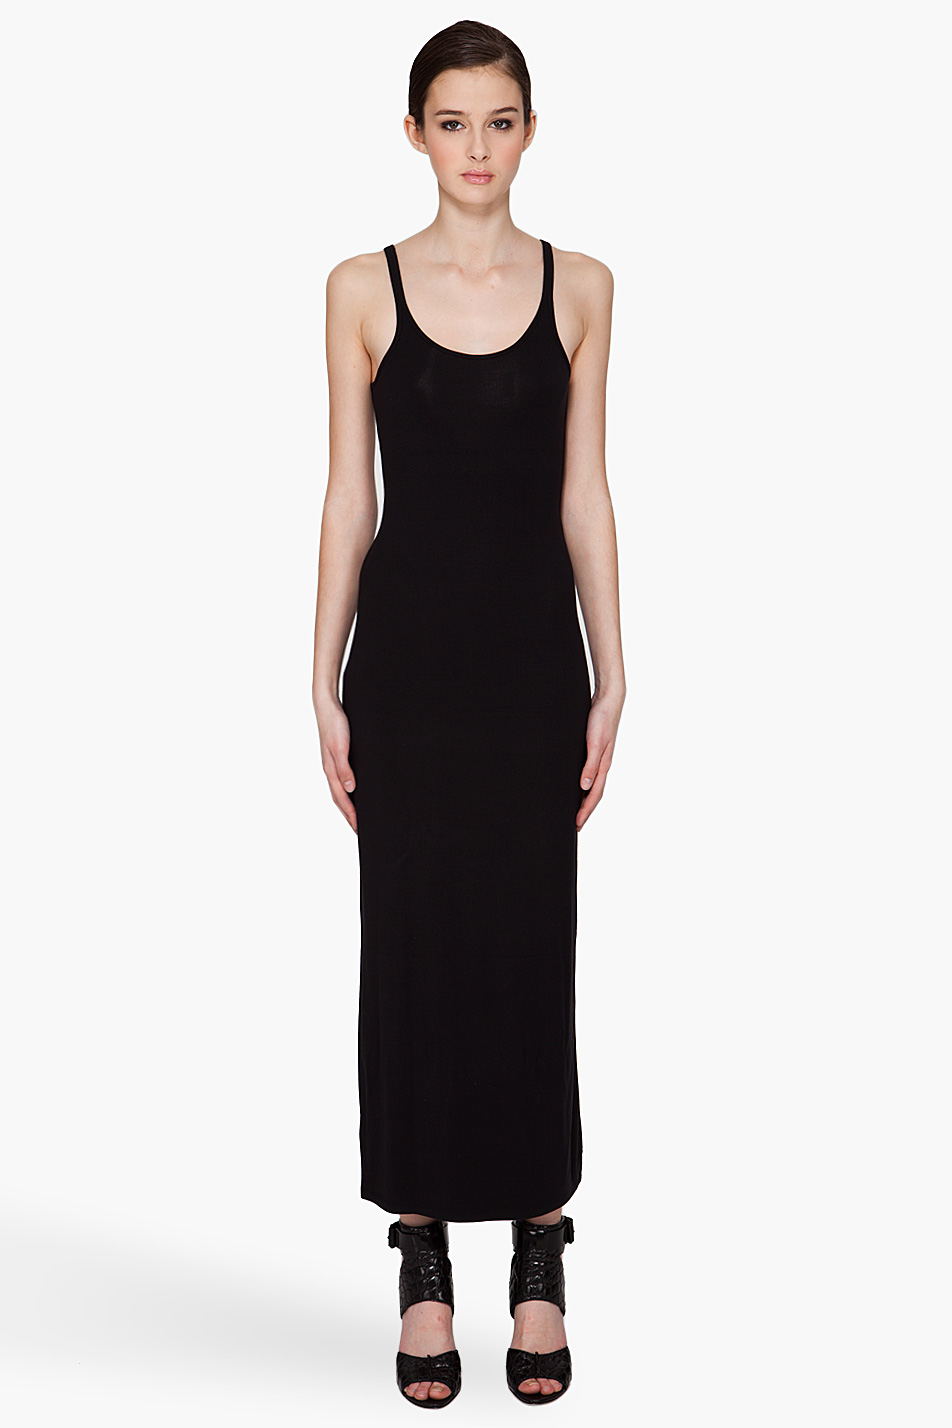 T by alexander wang Cami Tank Maxi Dress in Black | Lyst